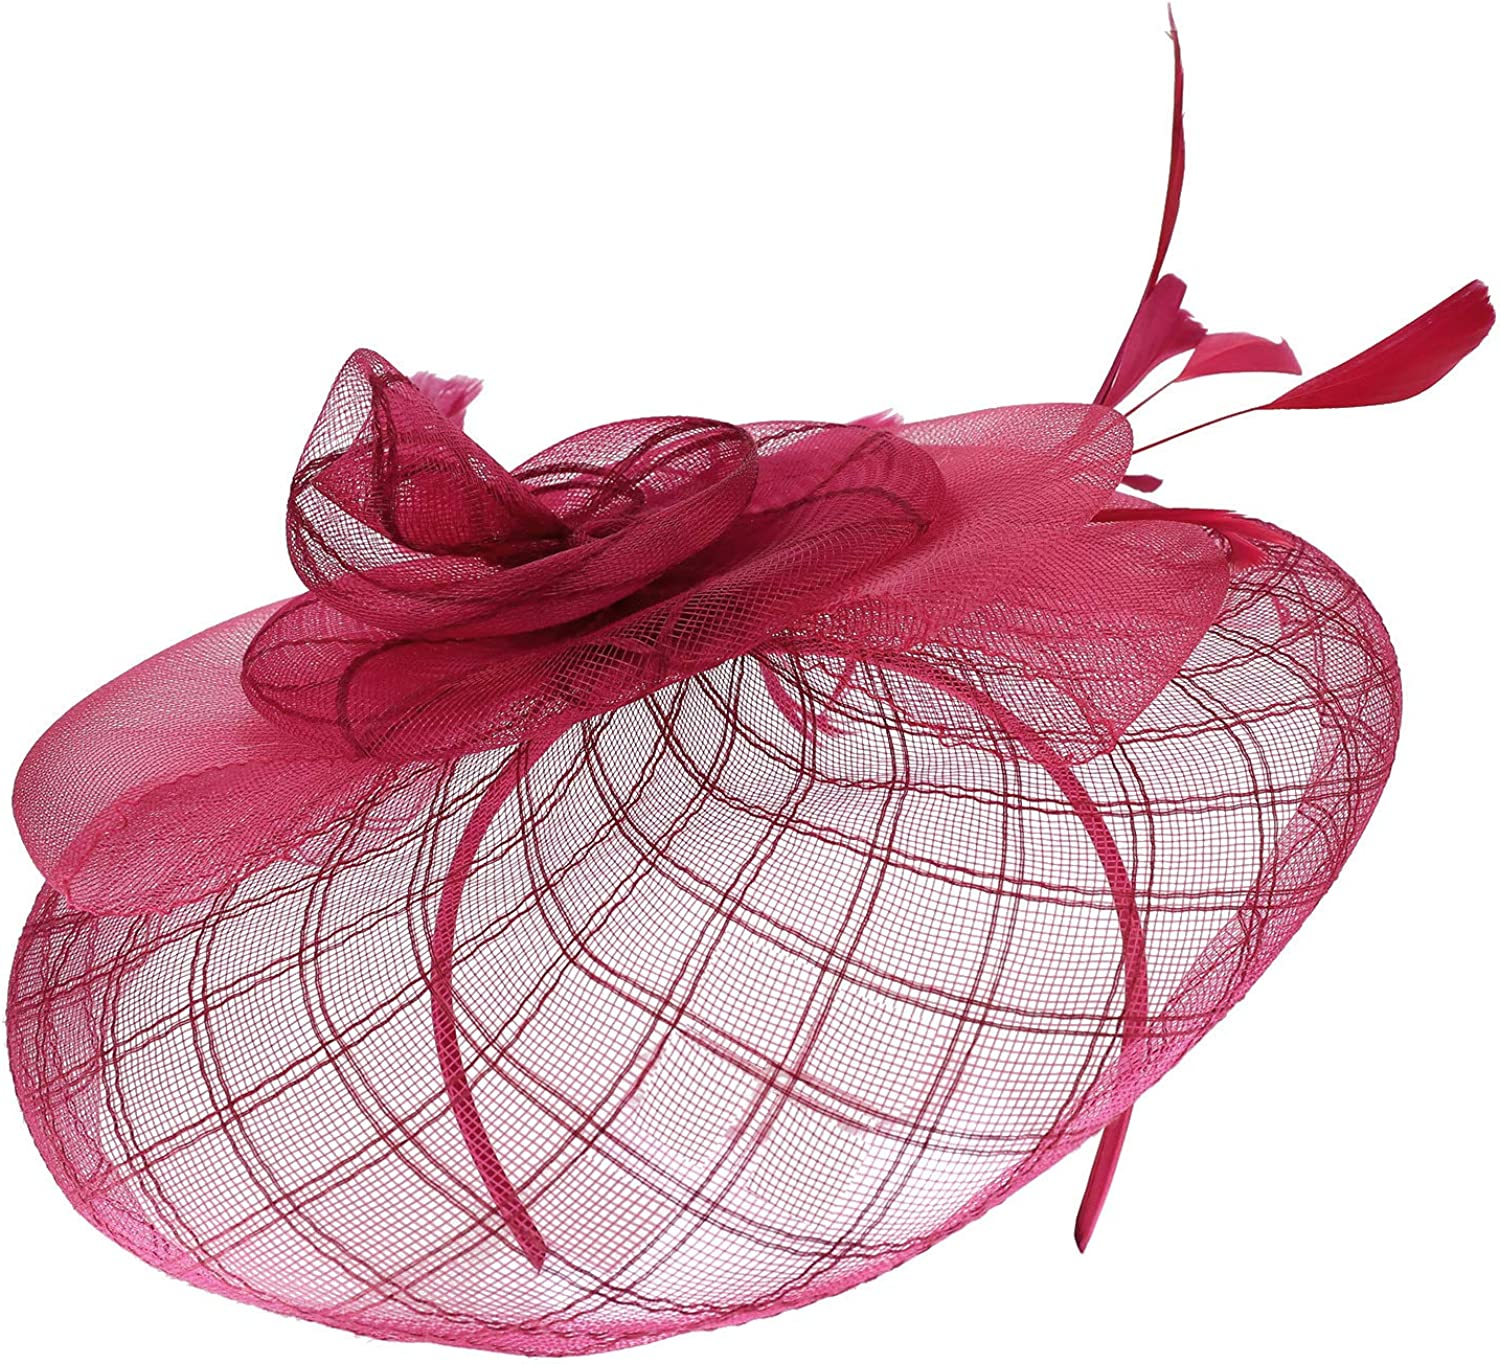 Trendy Apparel Shop Large Criss Cross Mesh Swirl Bow Fascinator with Feather